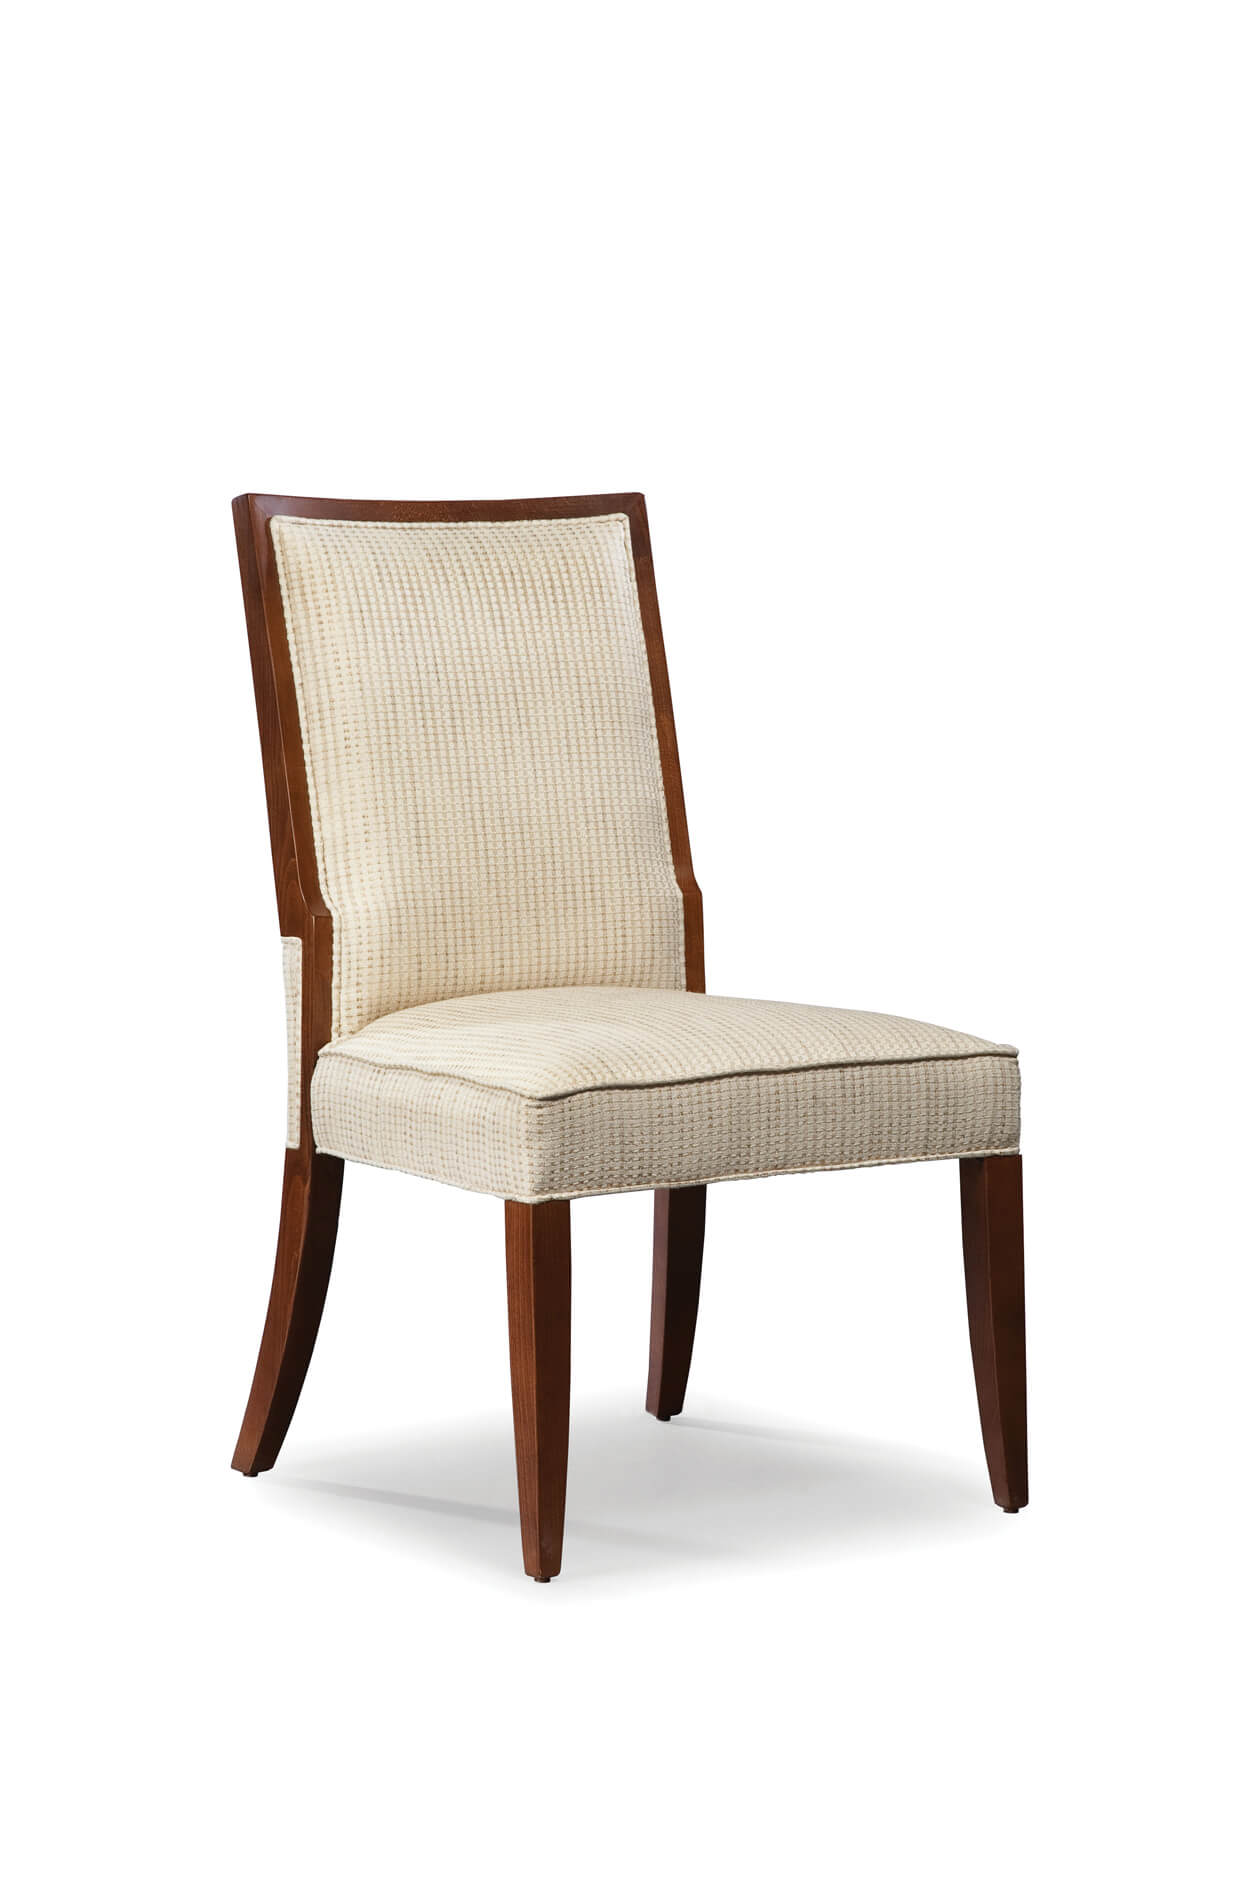 Fairfield's Harvey Upholstered Dining Side Chair